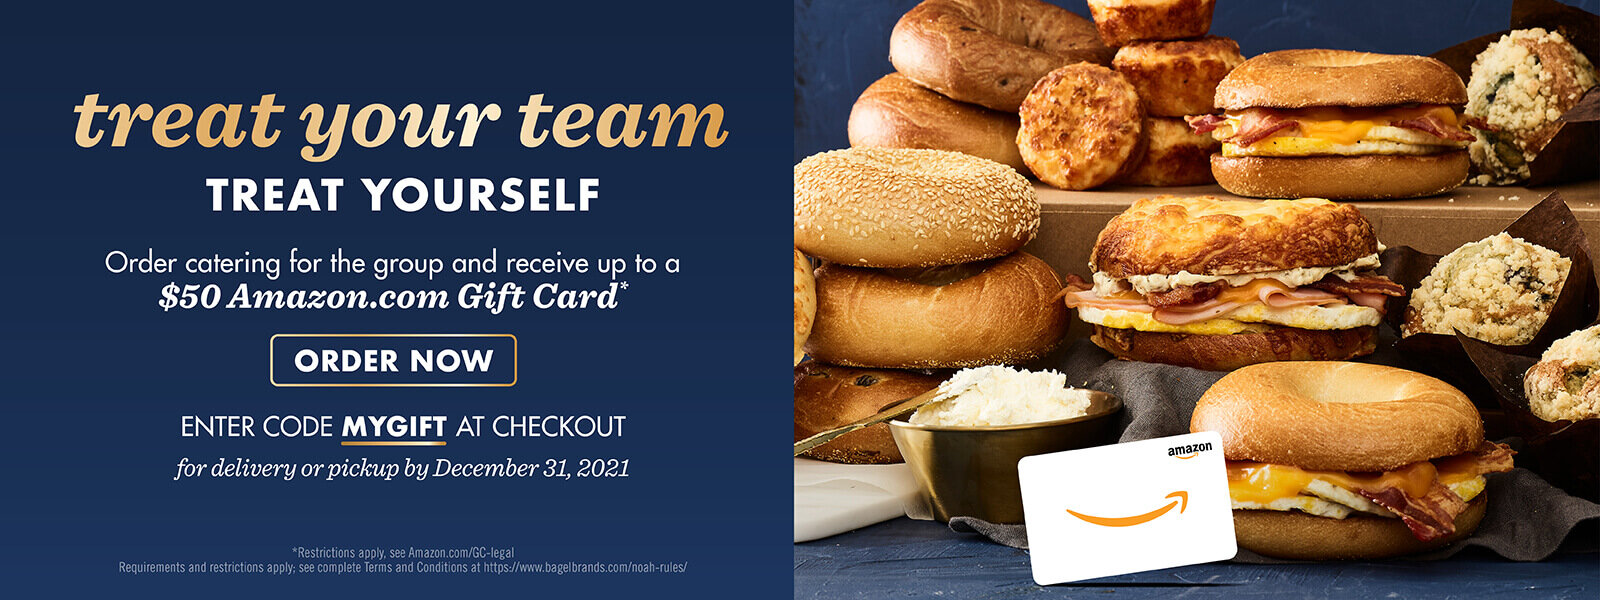 Treat your team to Noah's catering and get rewarded with an Amazon gift card